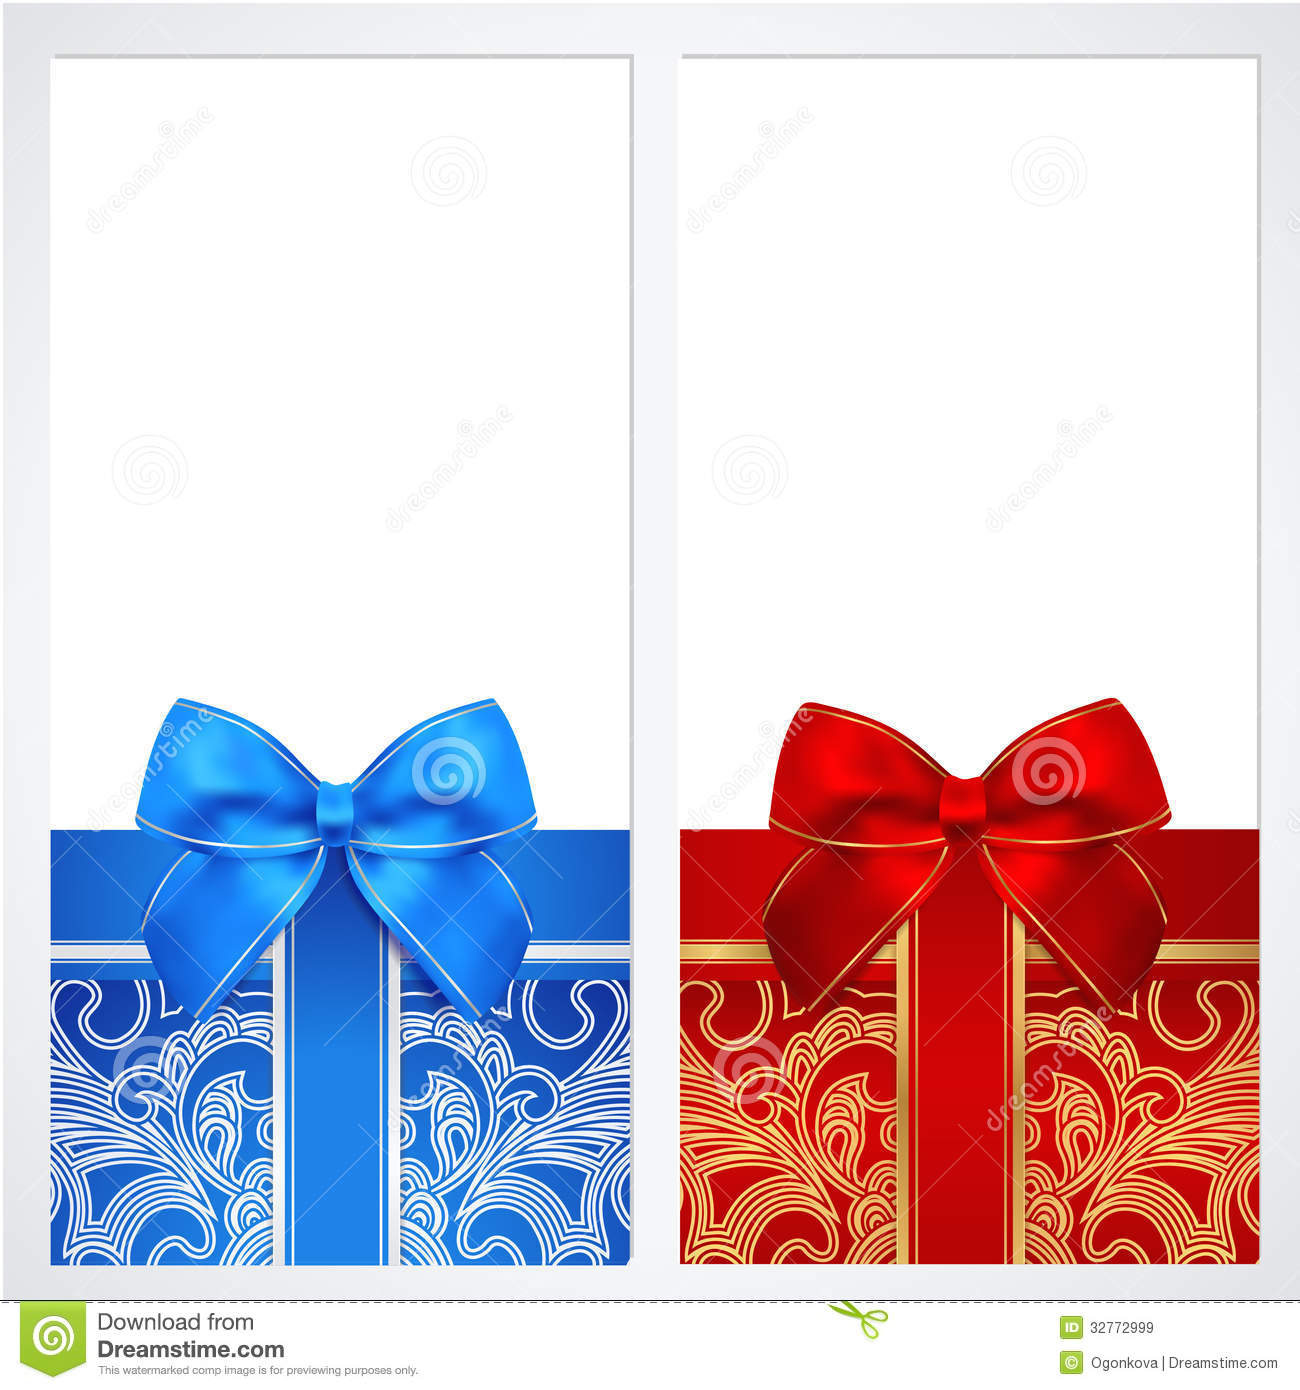 Voucher Gift Certificate Coupon Template Box Royalty Free Stock Images Image 32772999